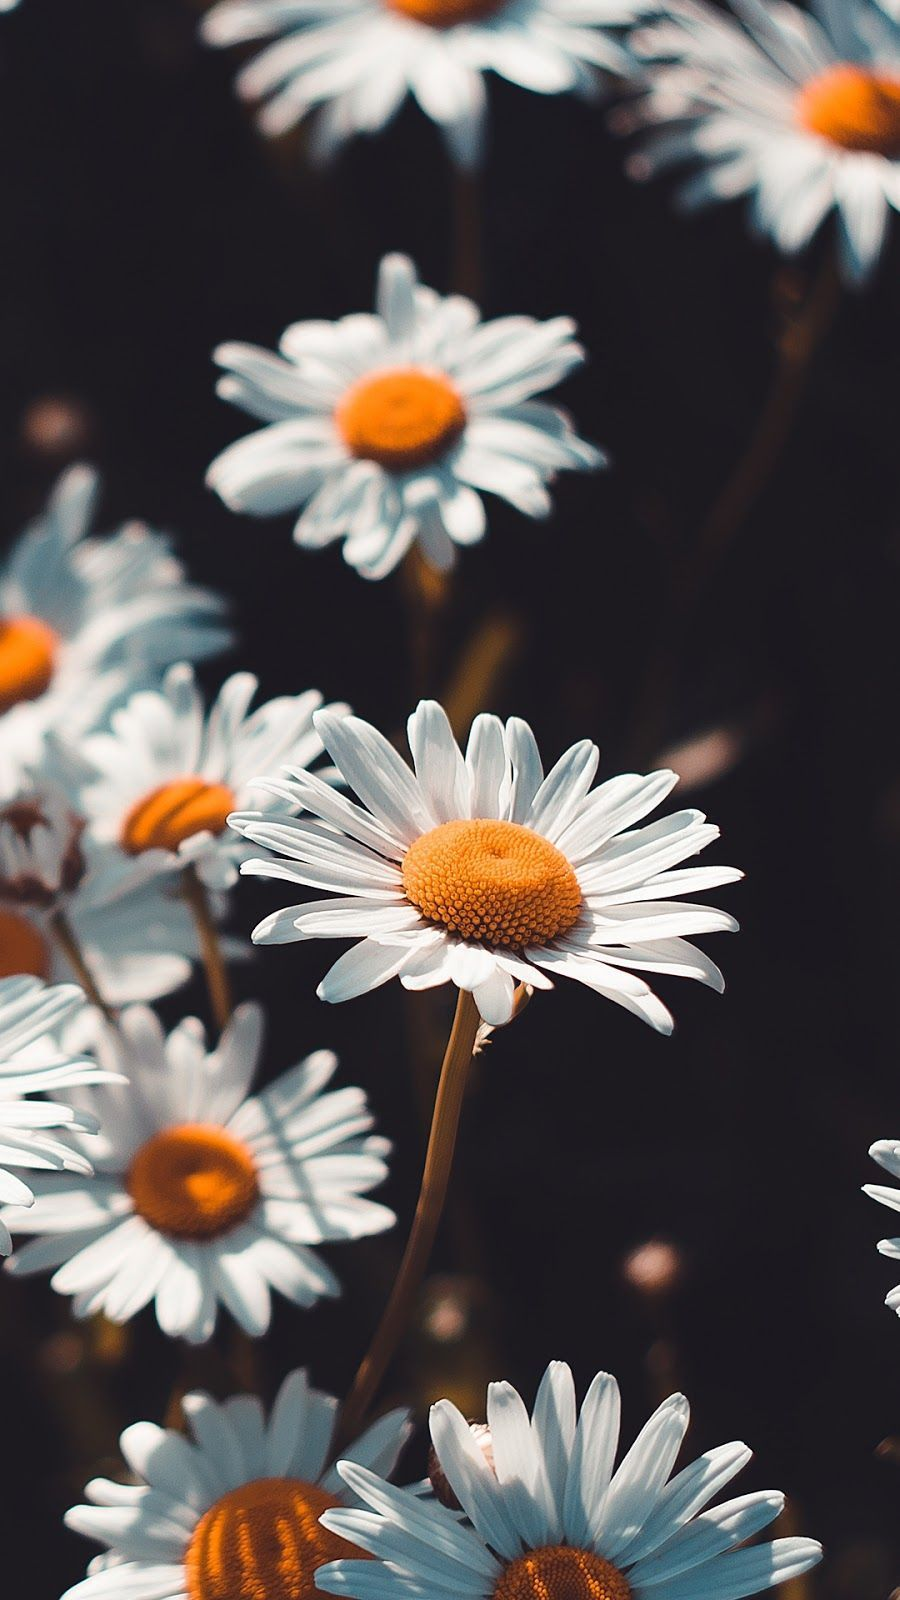 #thebestwallpapers #background #chamomile #wallpaper #followme